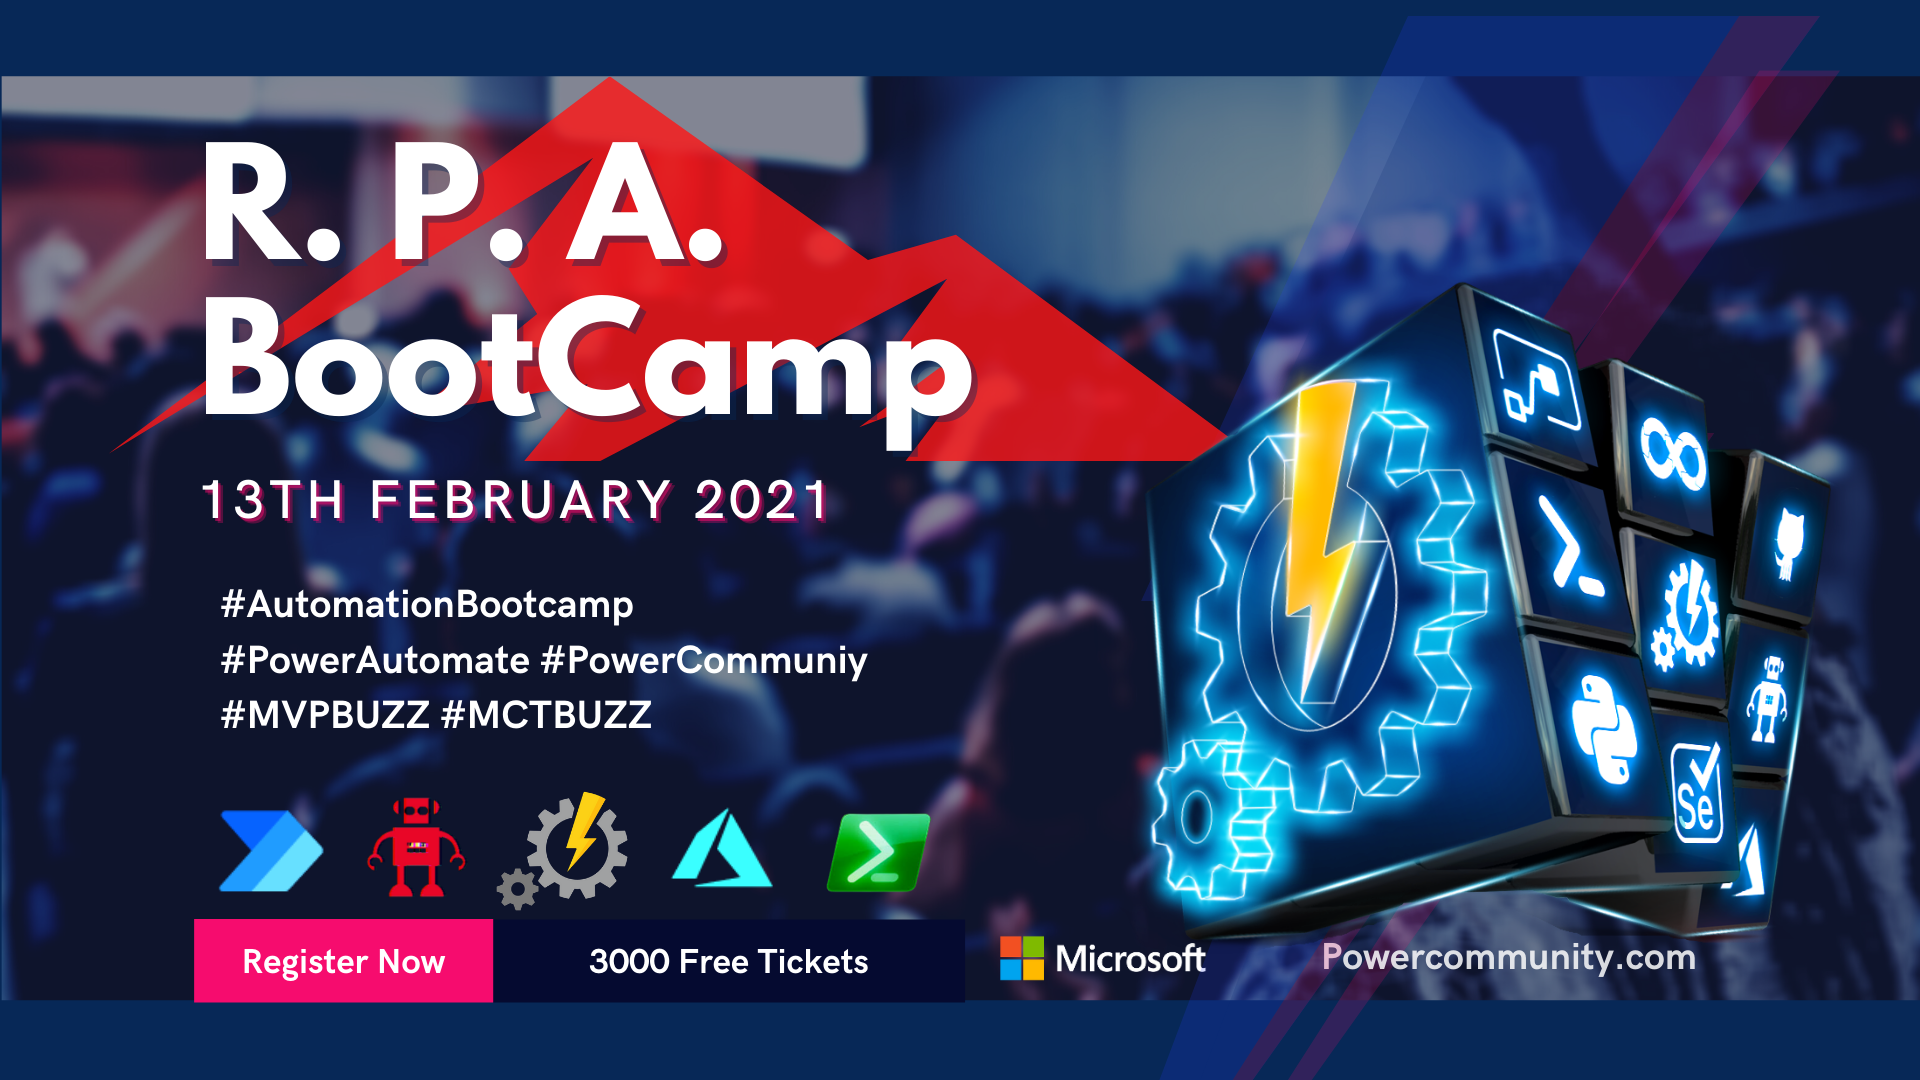 RPA Bootcamp 2021